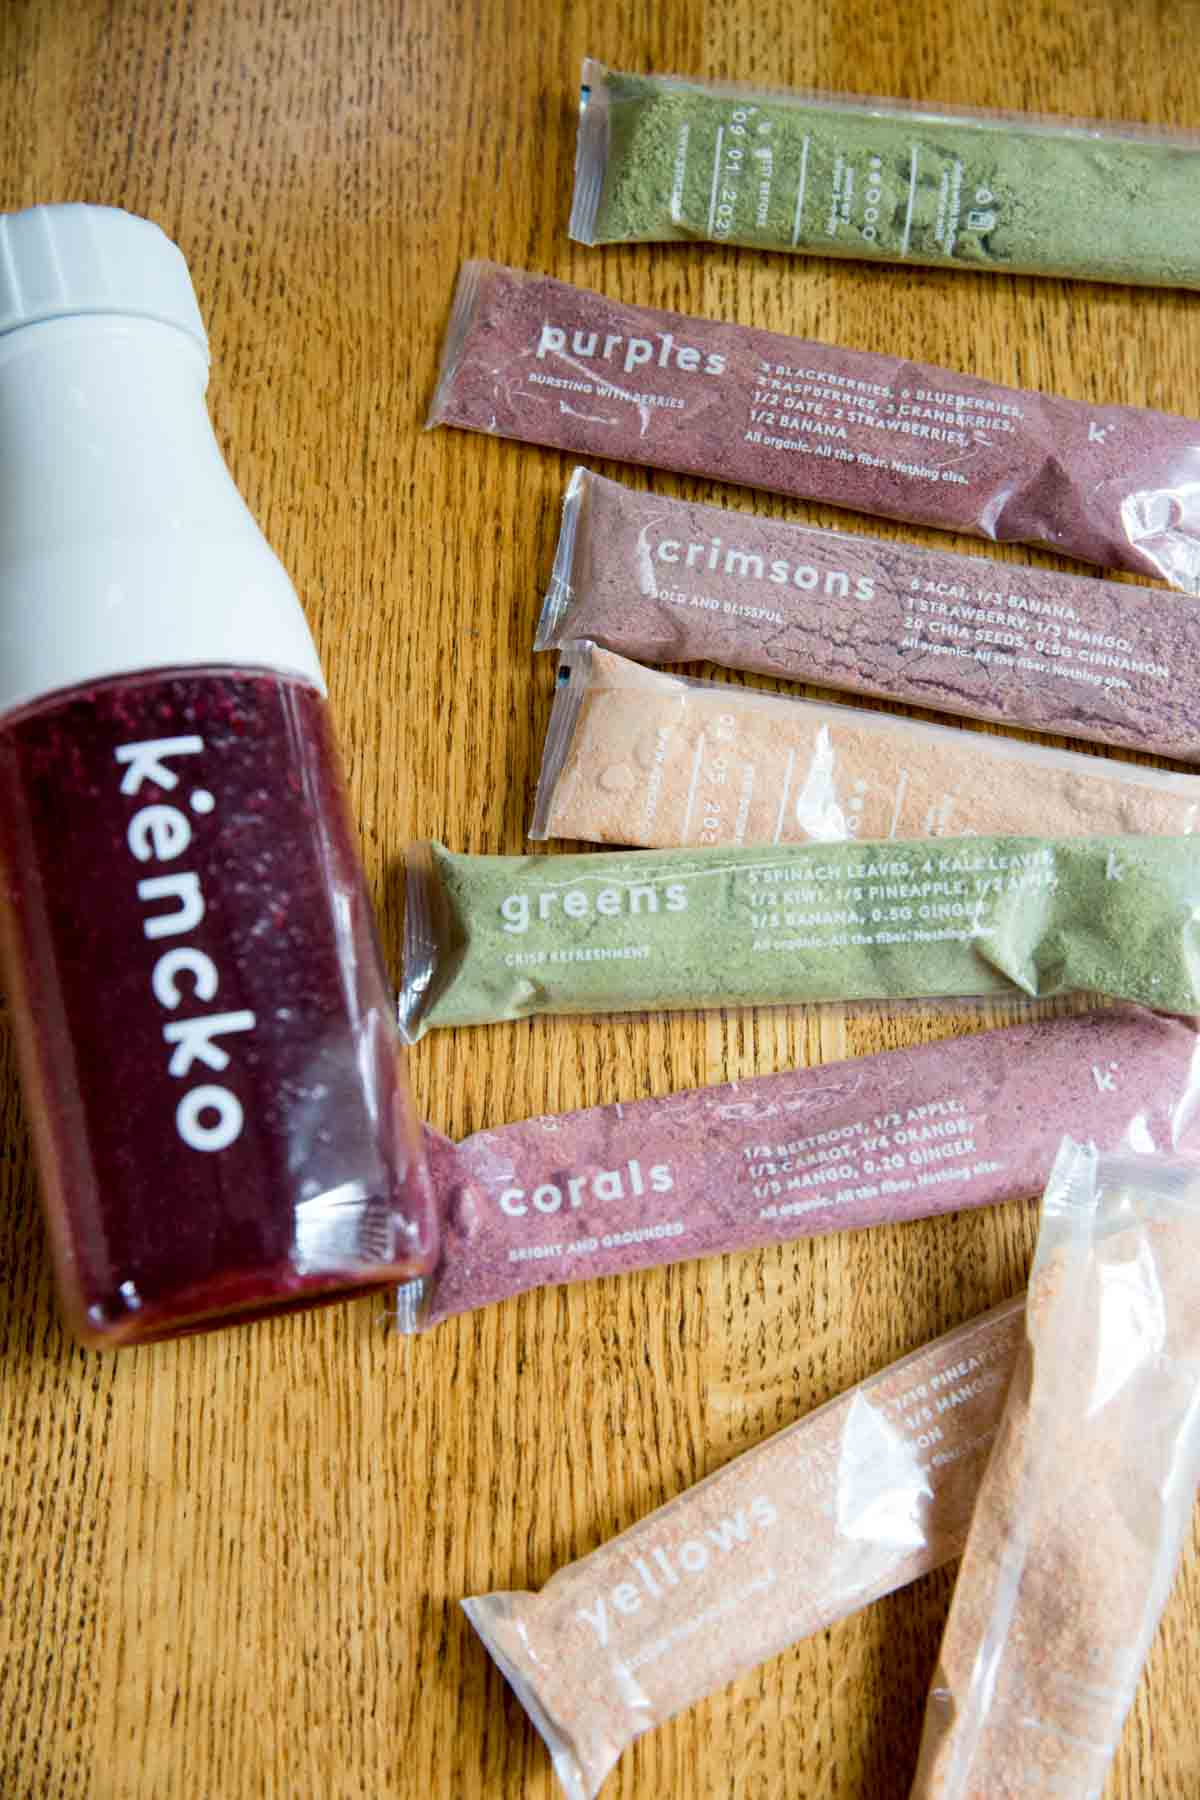 Kencko packets with shaker bottle